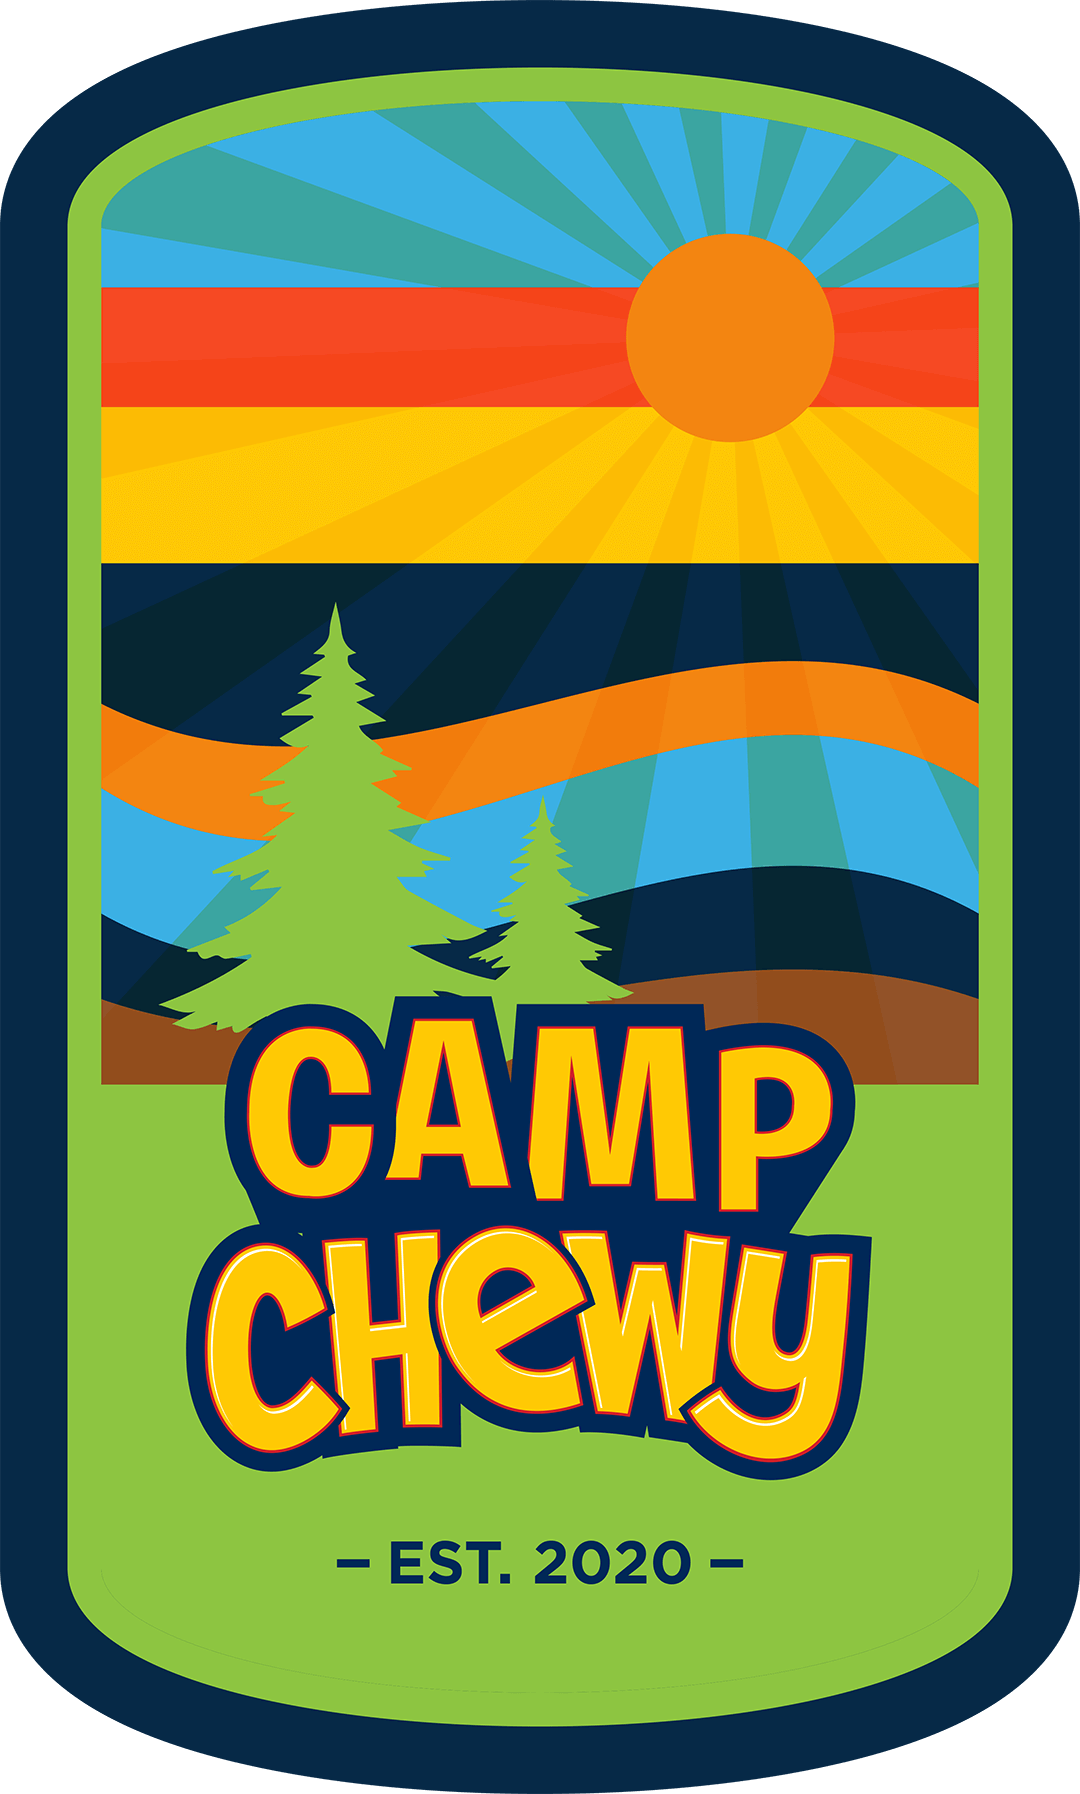 Home Quaker Chewy in 2020 Quaker chewy, Sweepstakes